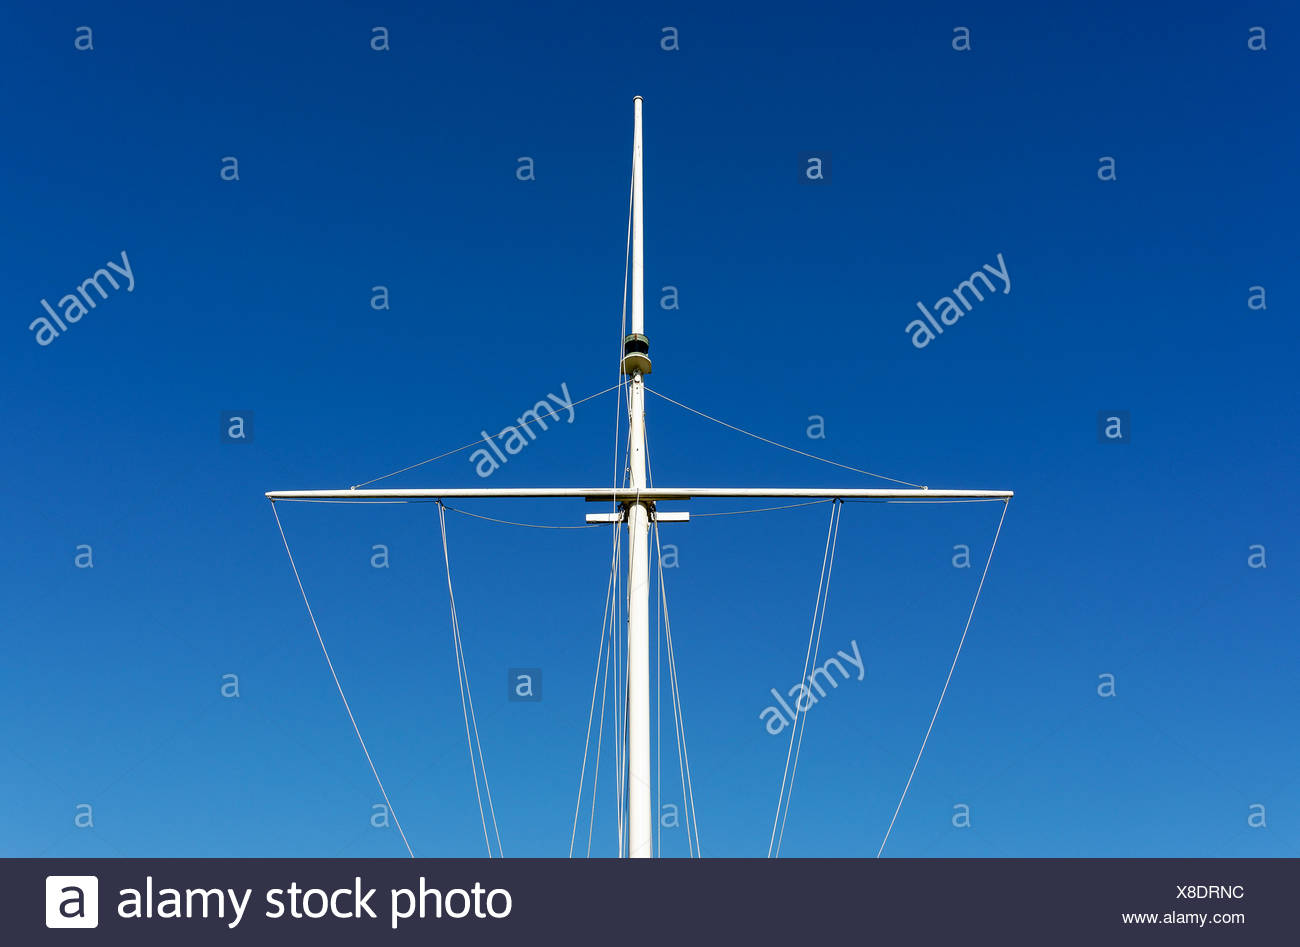 Mast of a boat. - Stock Image